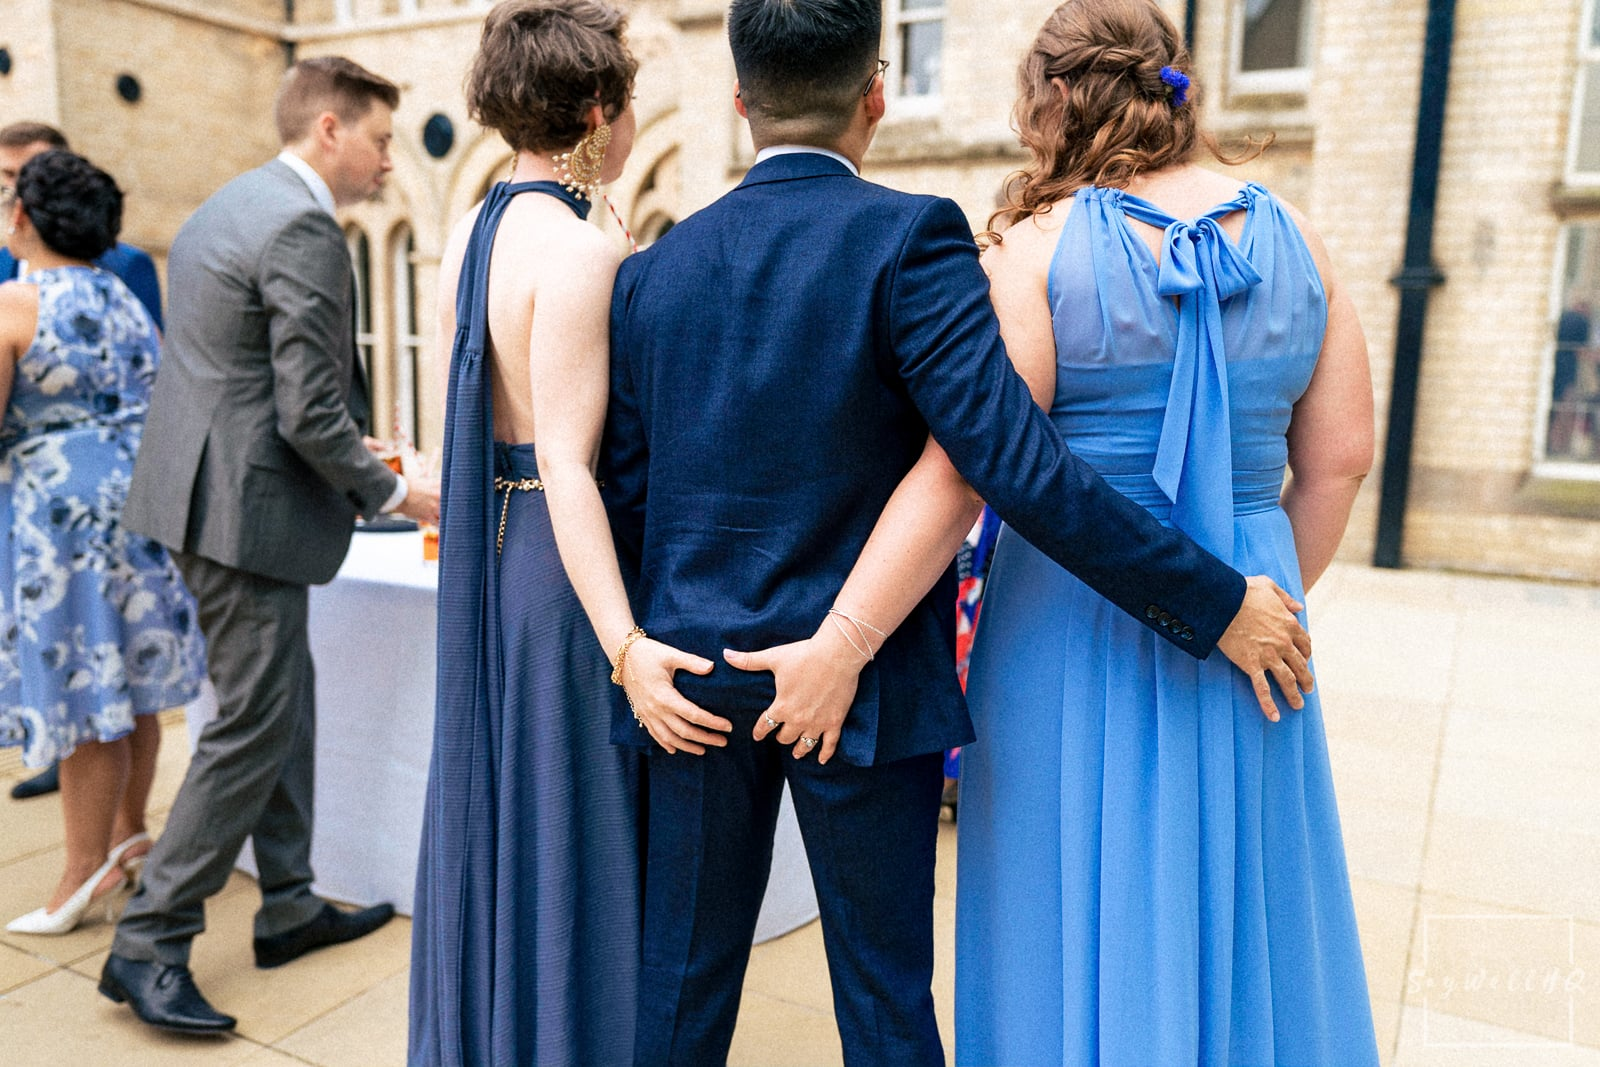 Nottingham Wedding Photography - Same sex wedding photography Nottingham - wedding guests enjoy the after ceremony drinks and games